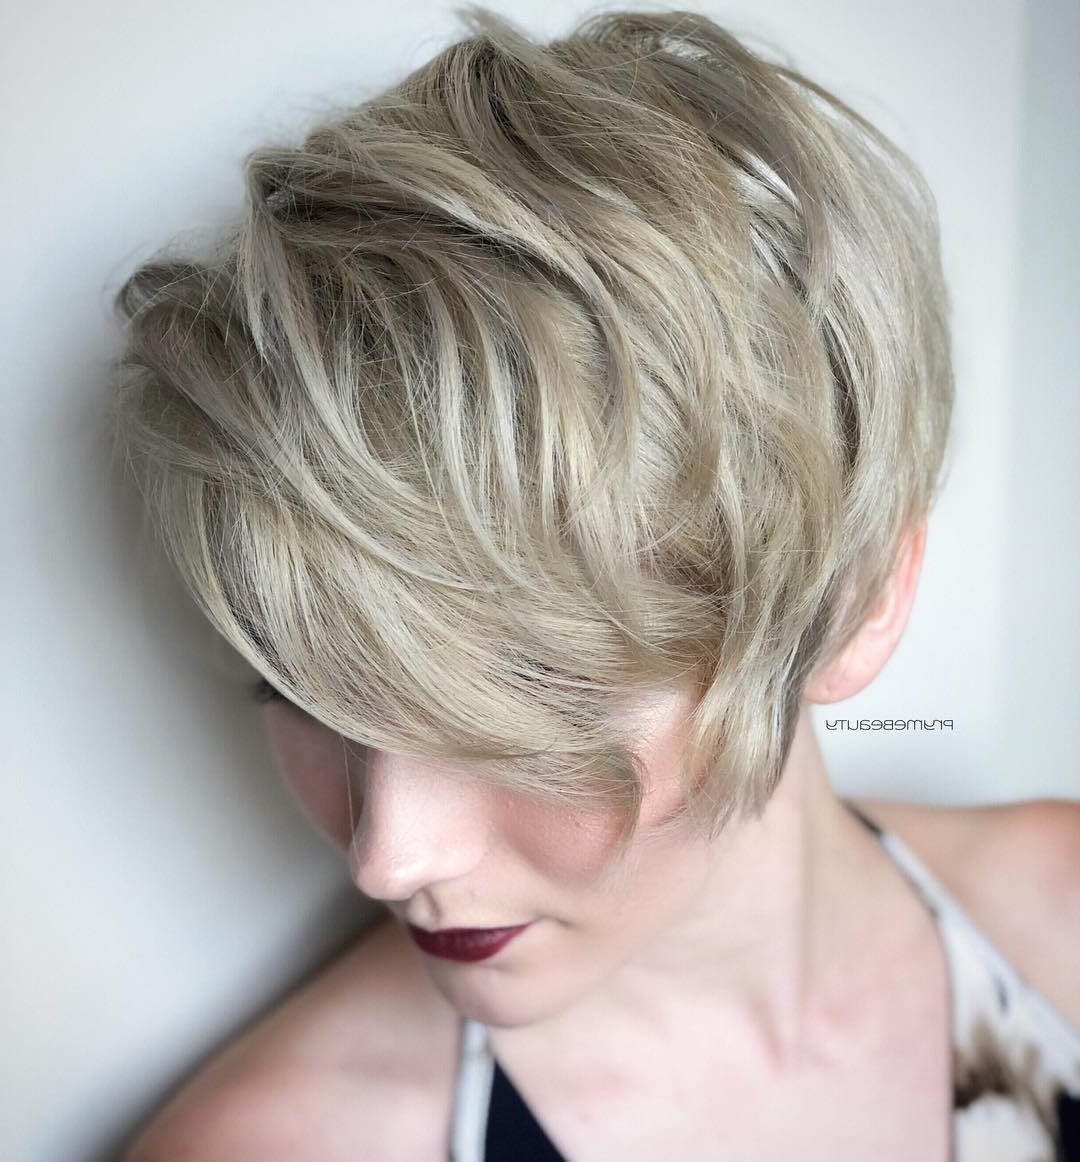 Best And Newest Flippy Layers Hairstyles Pertaining To Top 10 Trendy, Low Maintenance Short Layered Hairstyles (View 12 of 20)